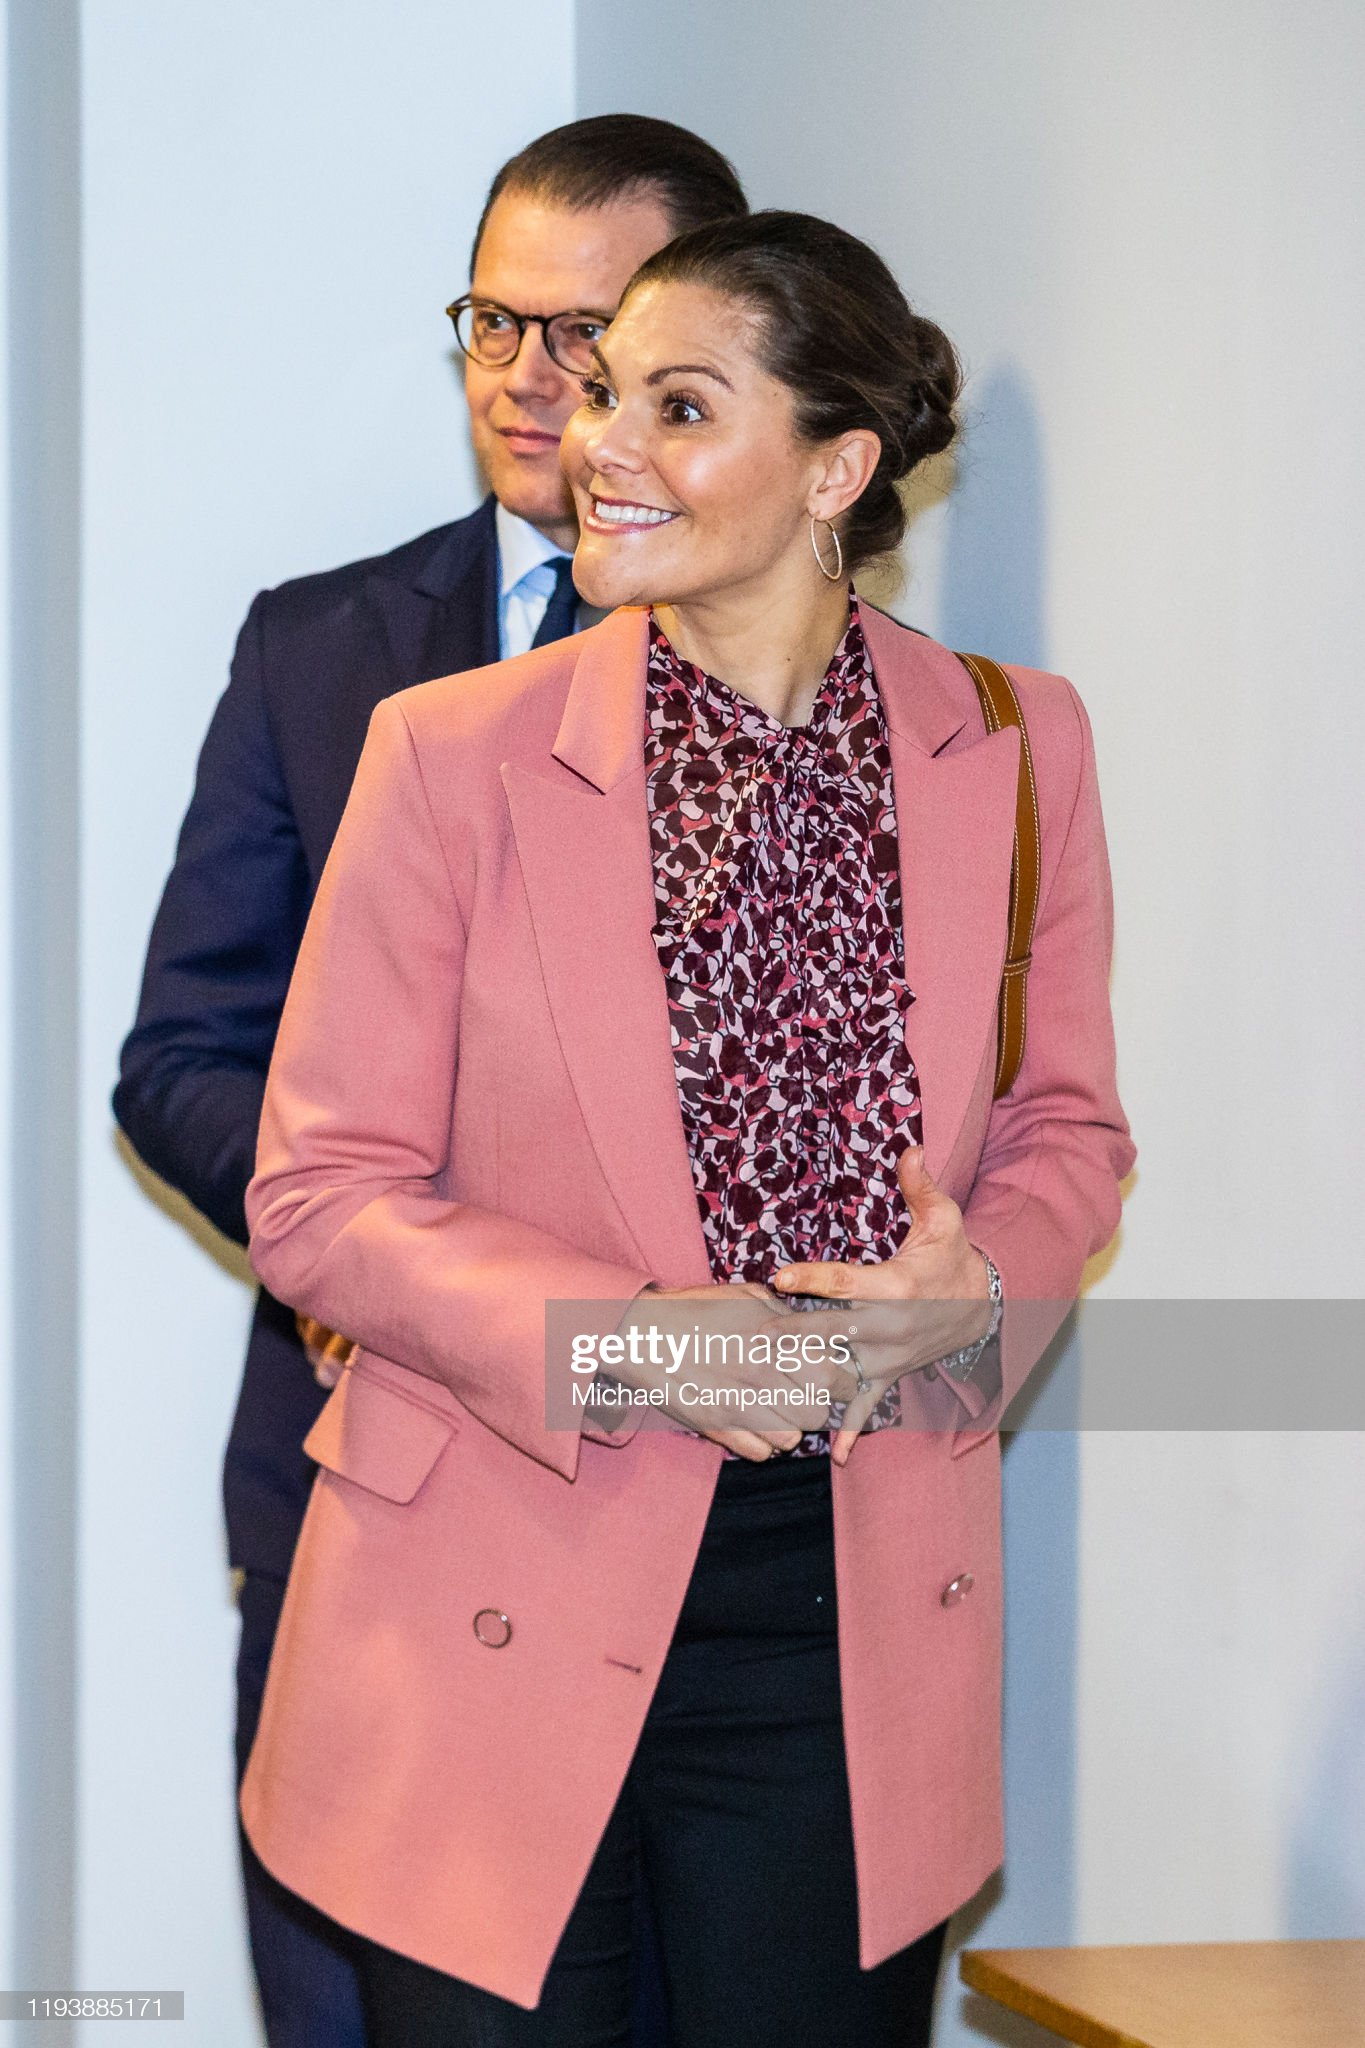 crown-princess-victoria-of-sweden-visits-the-swedish-federation-for-picture-id1193885171